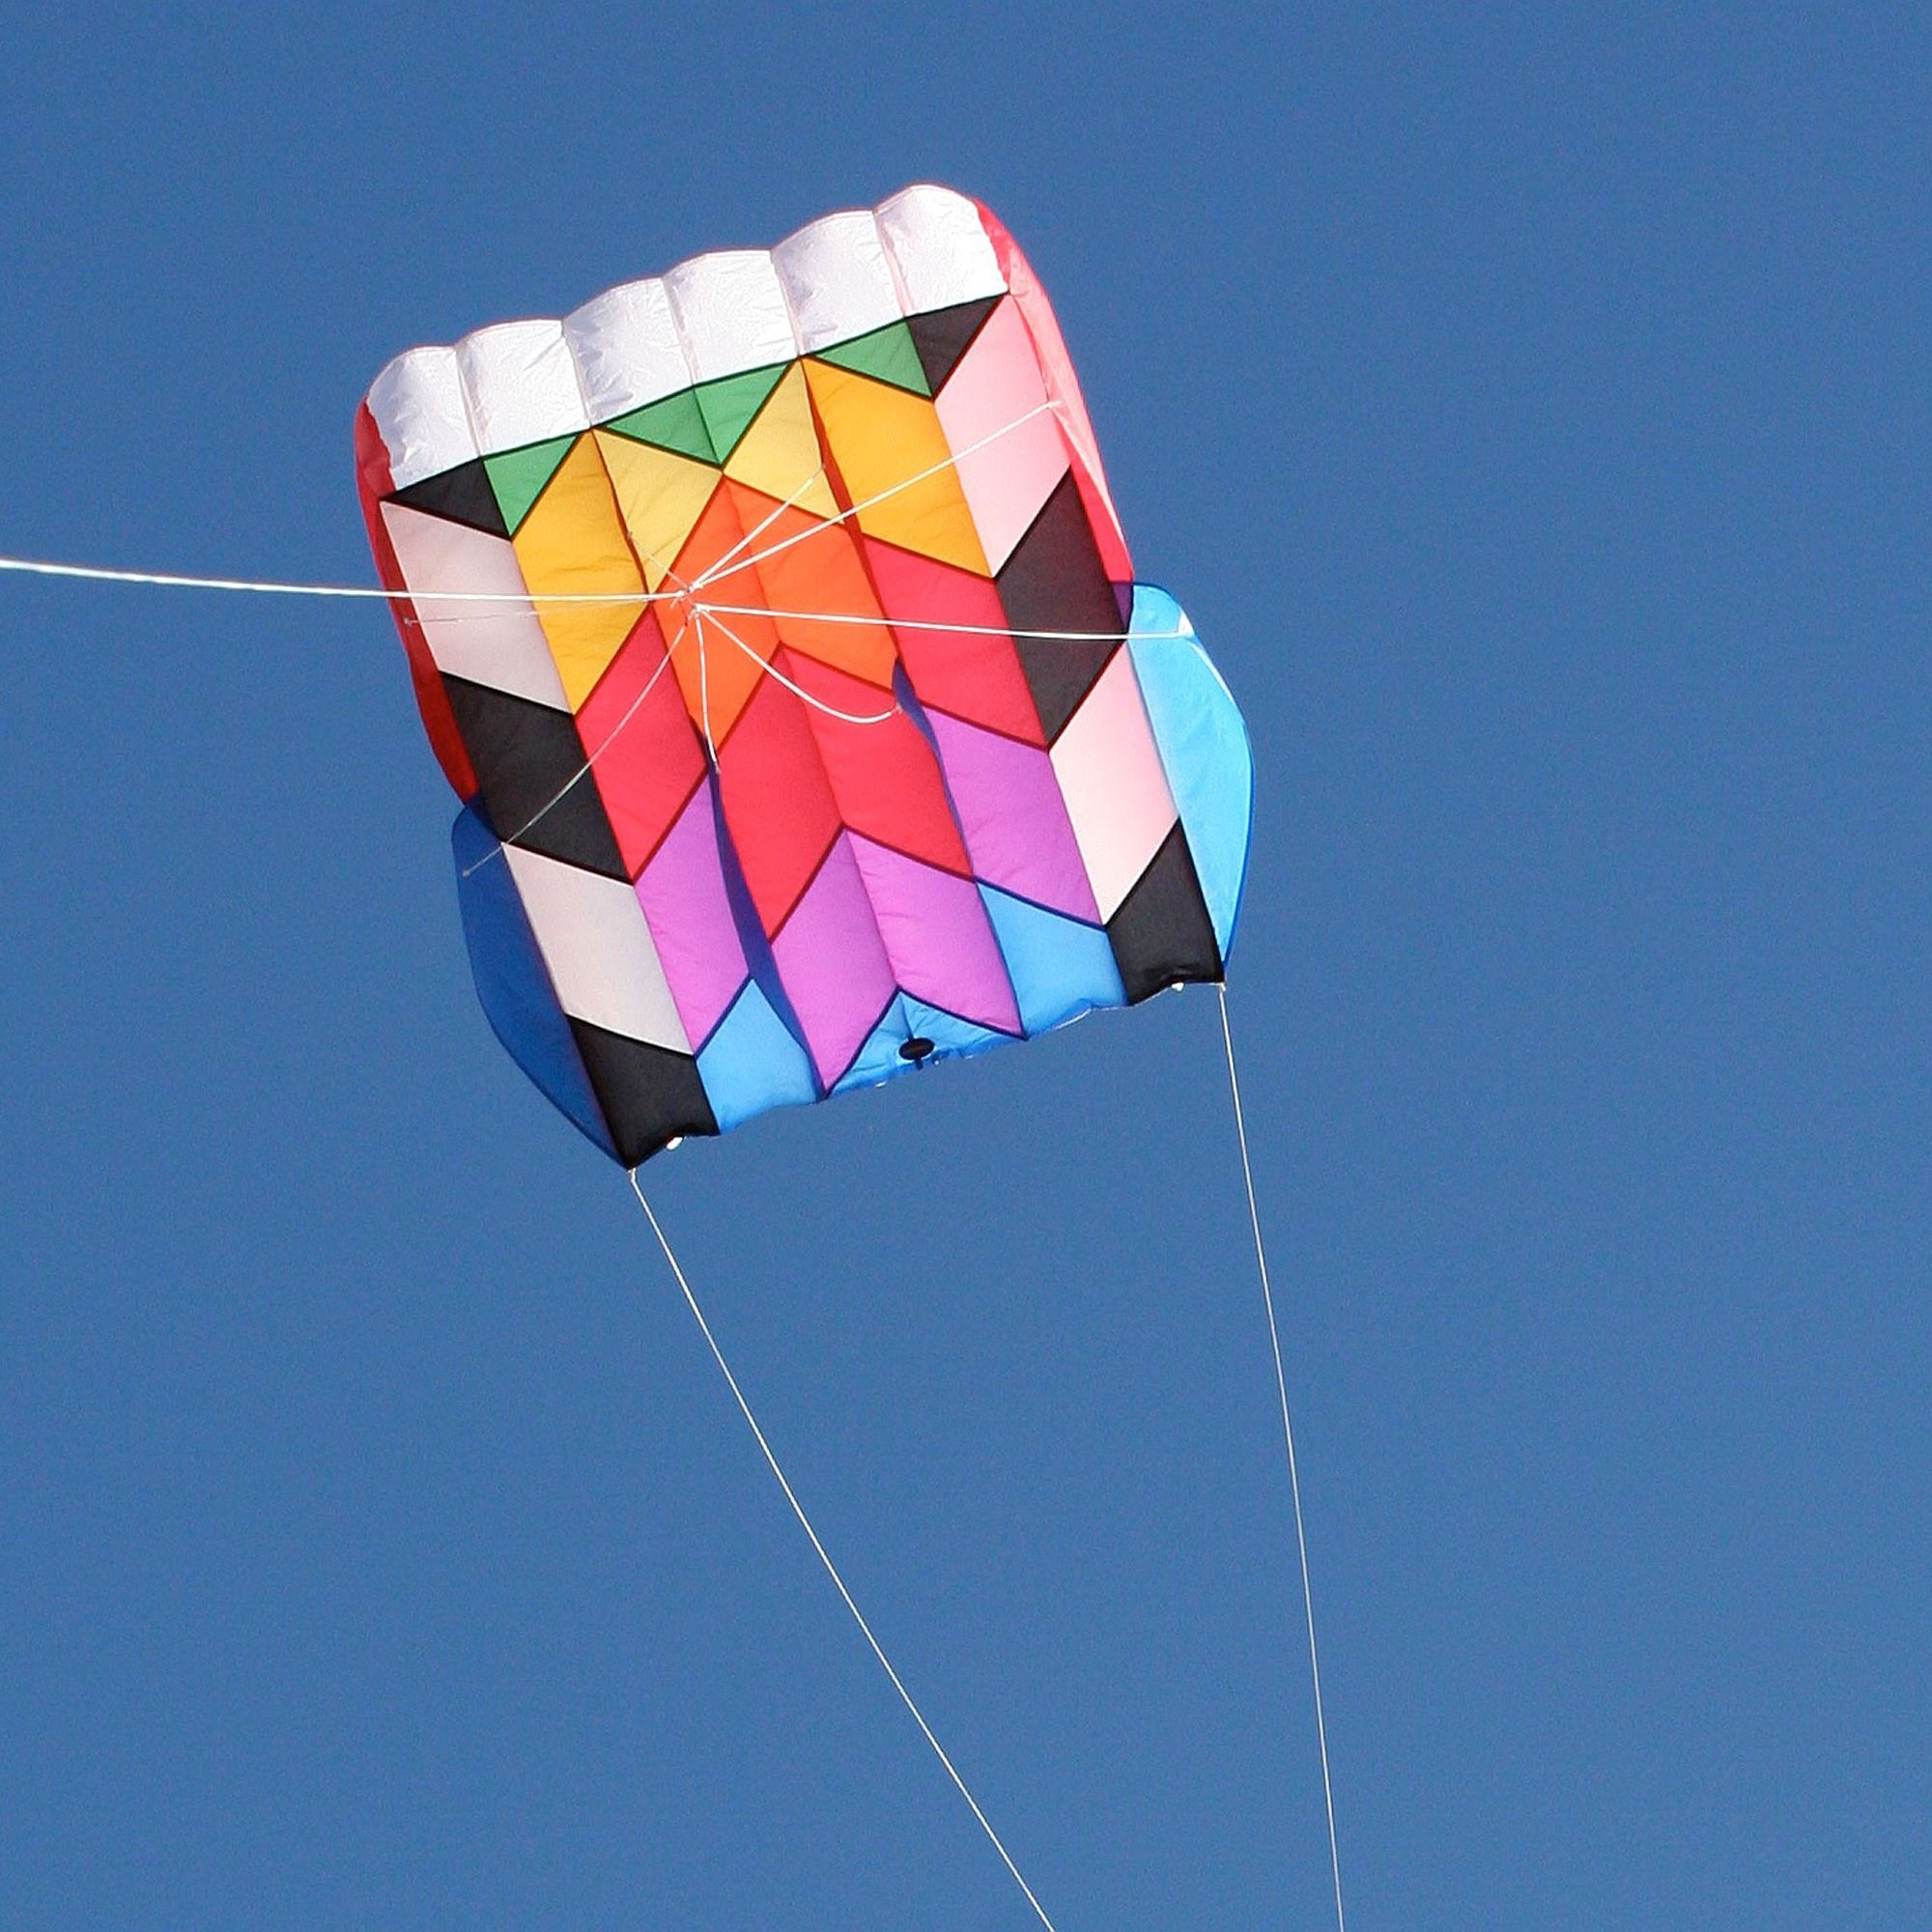 Into The Wind Parafoil 10 Kite